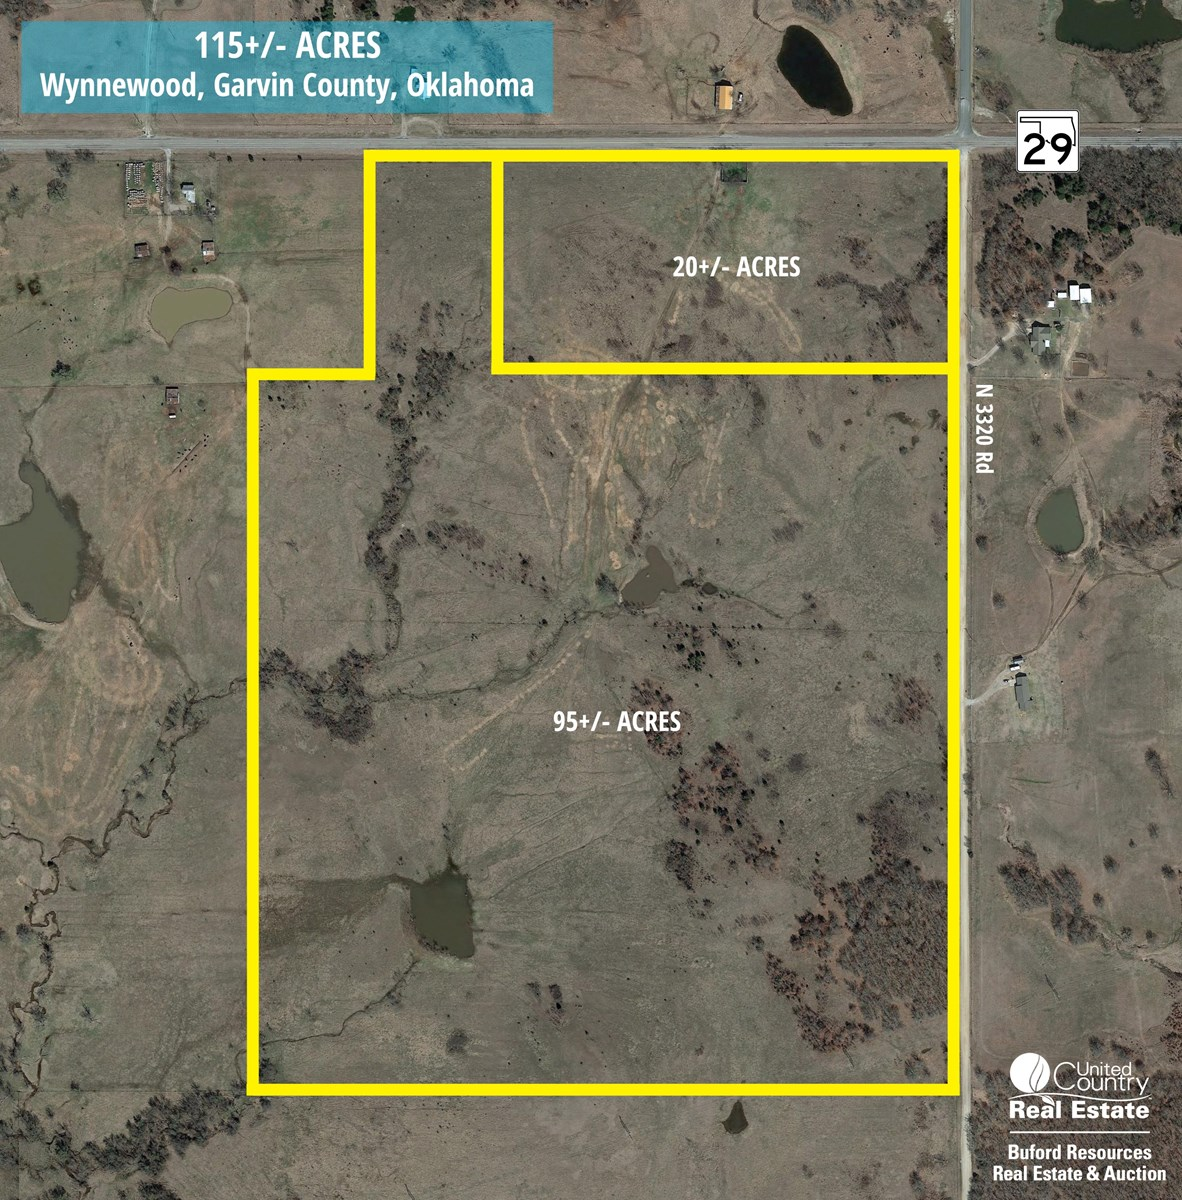 LAND PROPERTY FOR SALE WYNNEWOOD GARVIN COUNTY OKLAHOMA